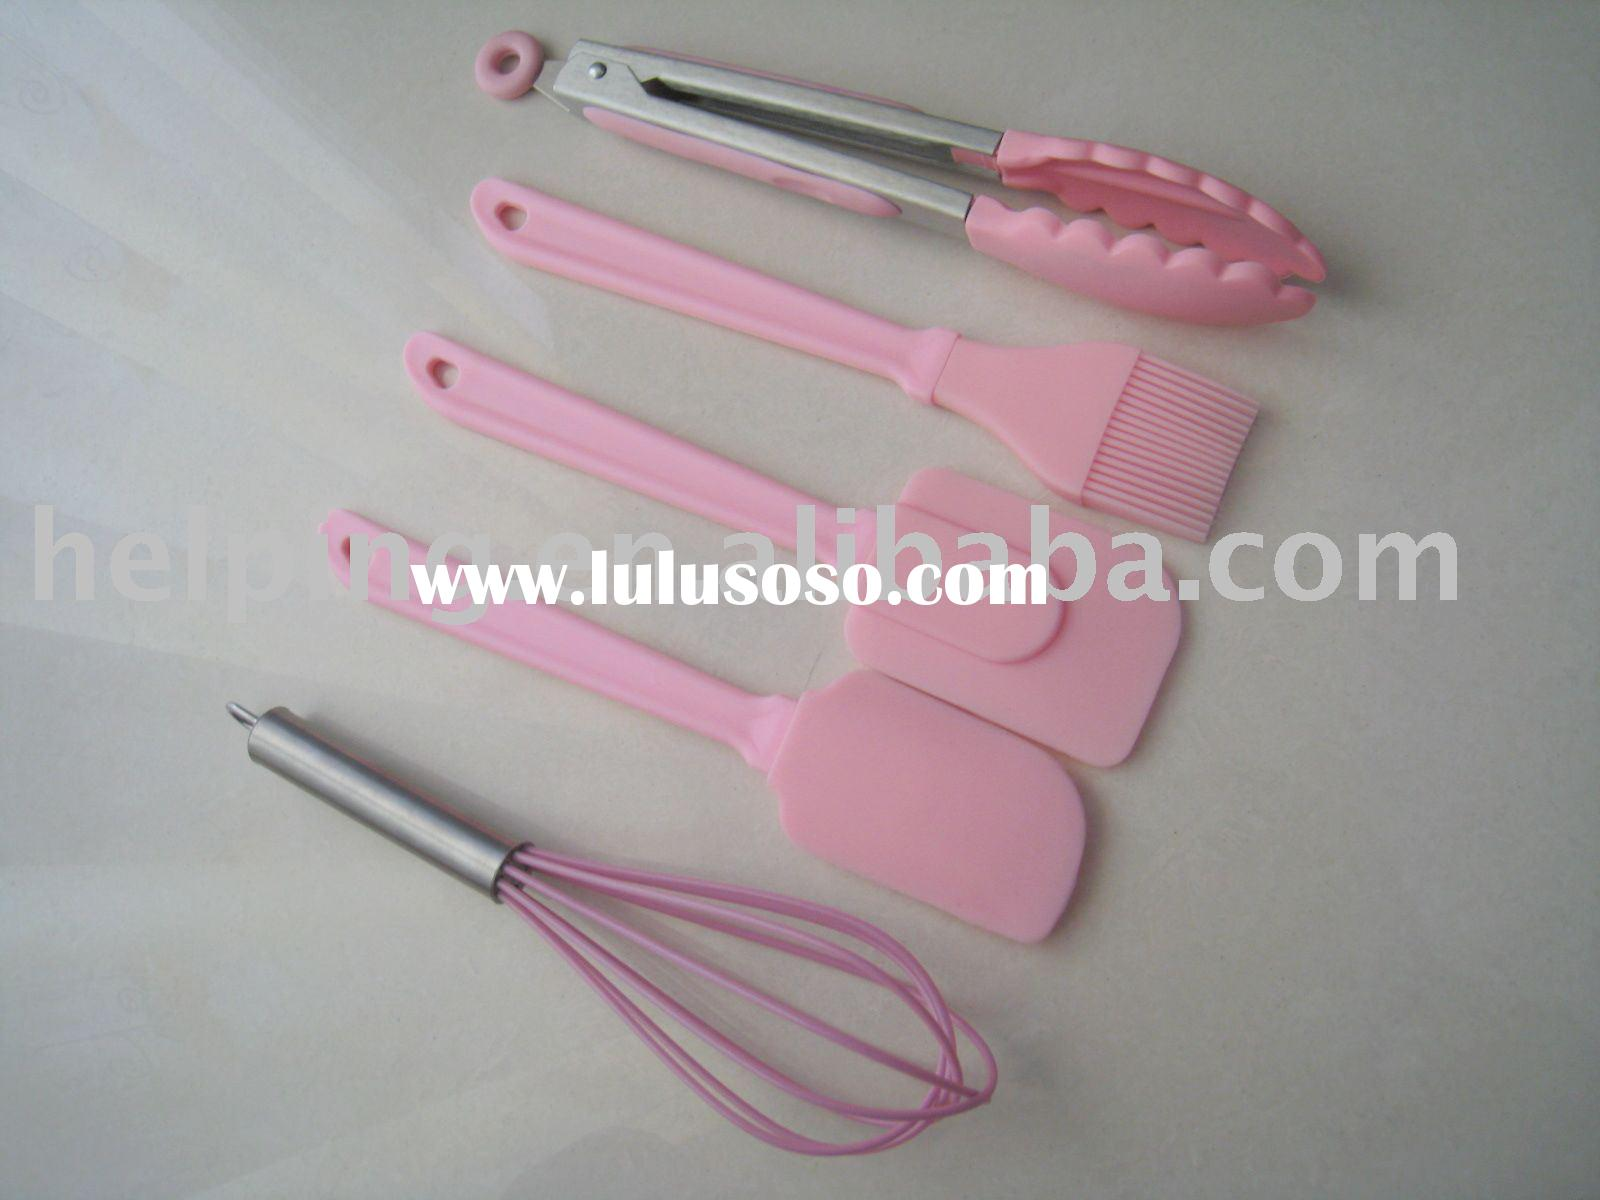 Silicone Kitchen Tools, Silicone Kitchen Set, Kitchen Accessories